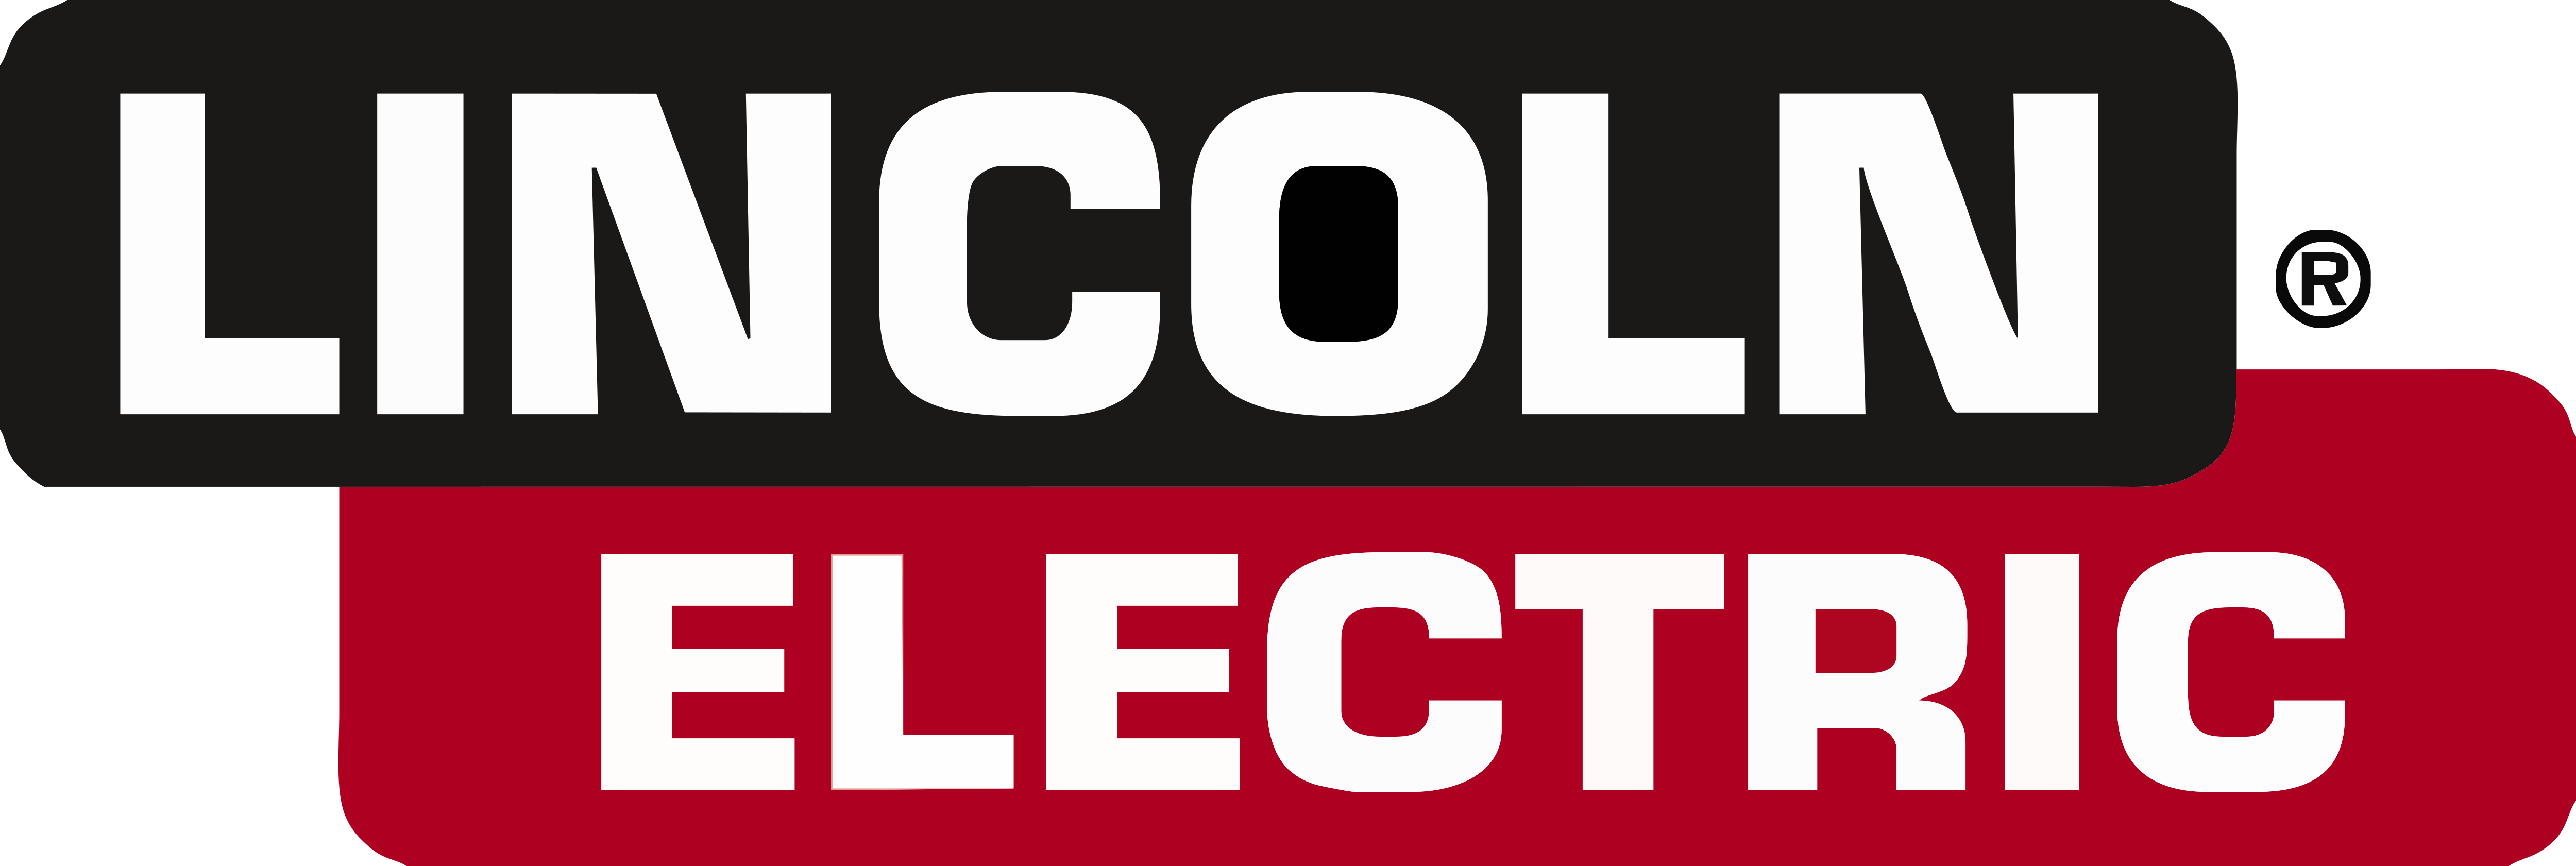 Lincoln Electric Logos Download